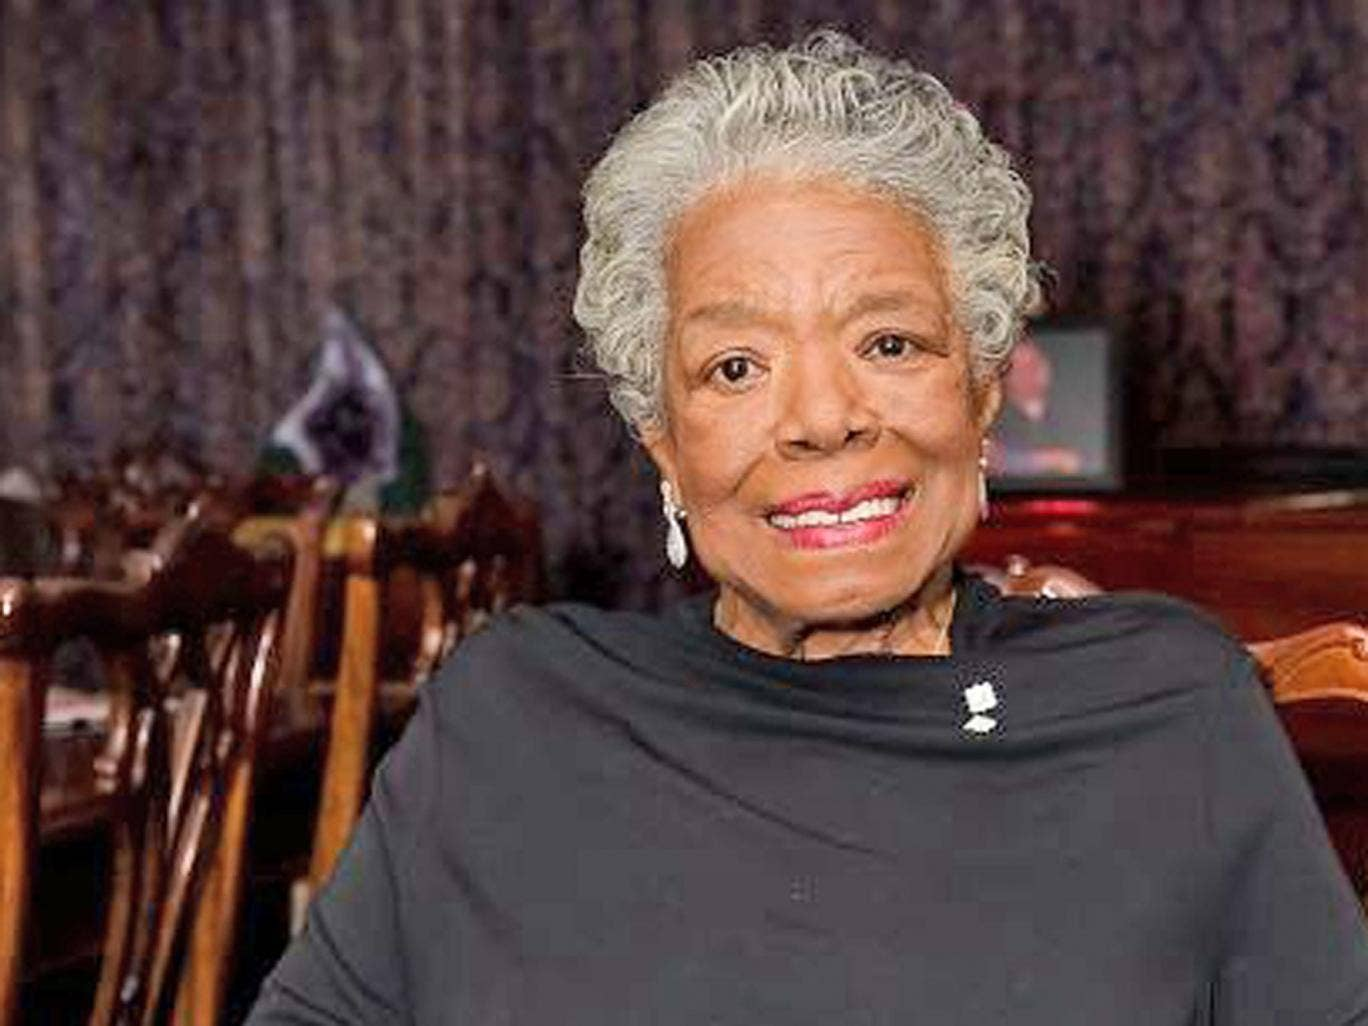 Where is Maya Angelou's Touched by an Angel published?